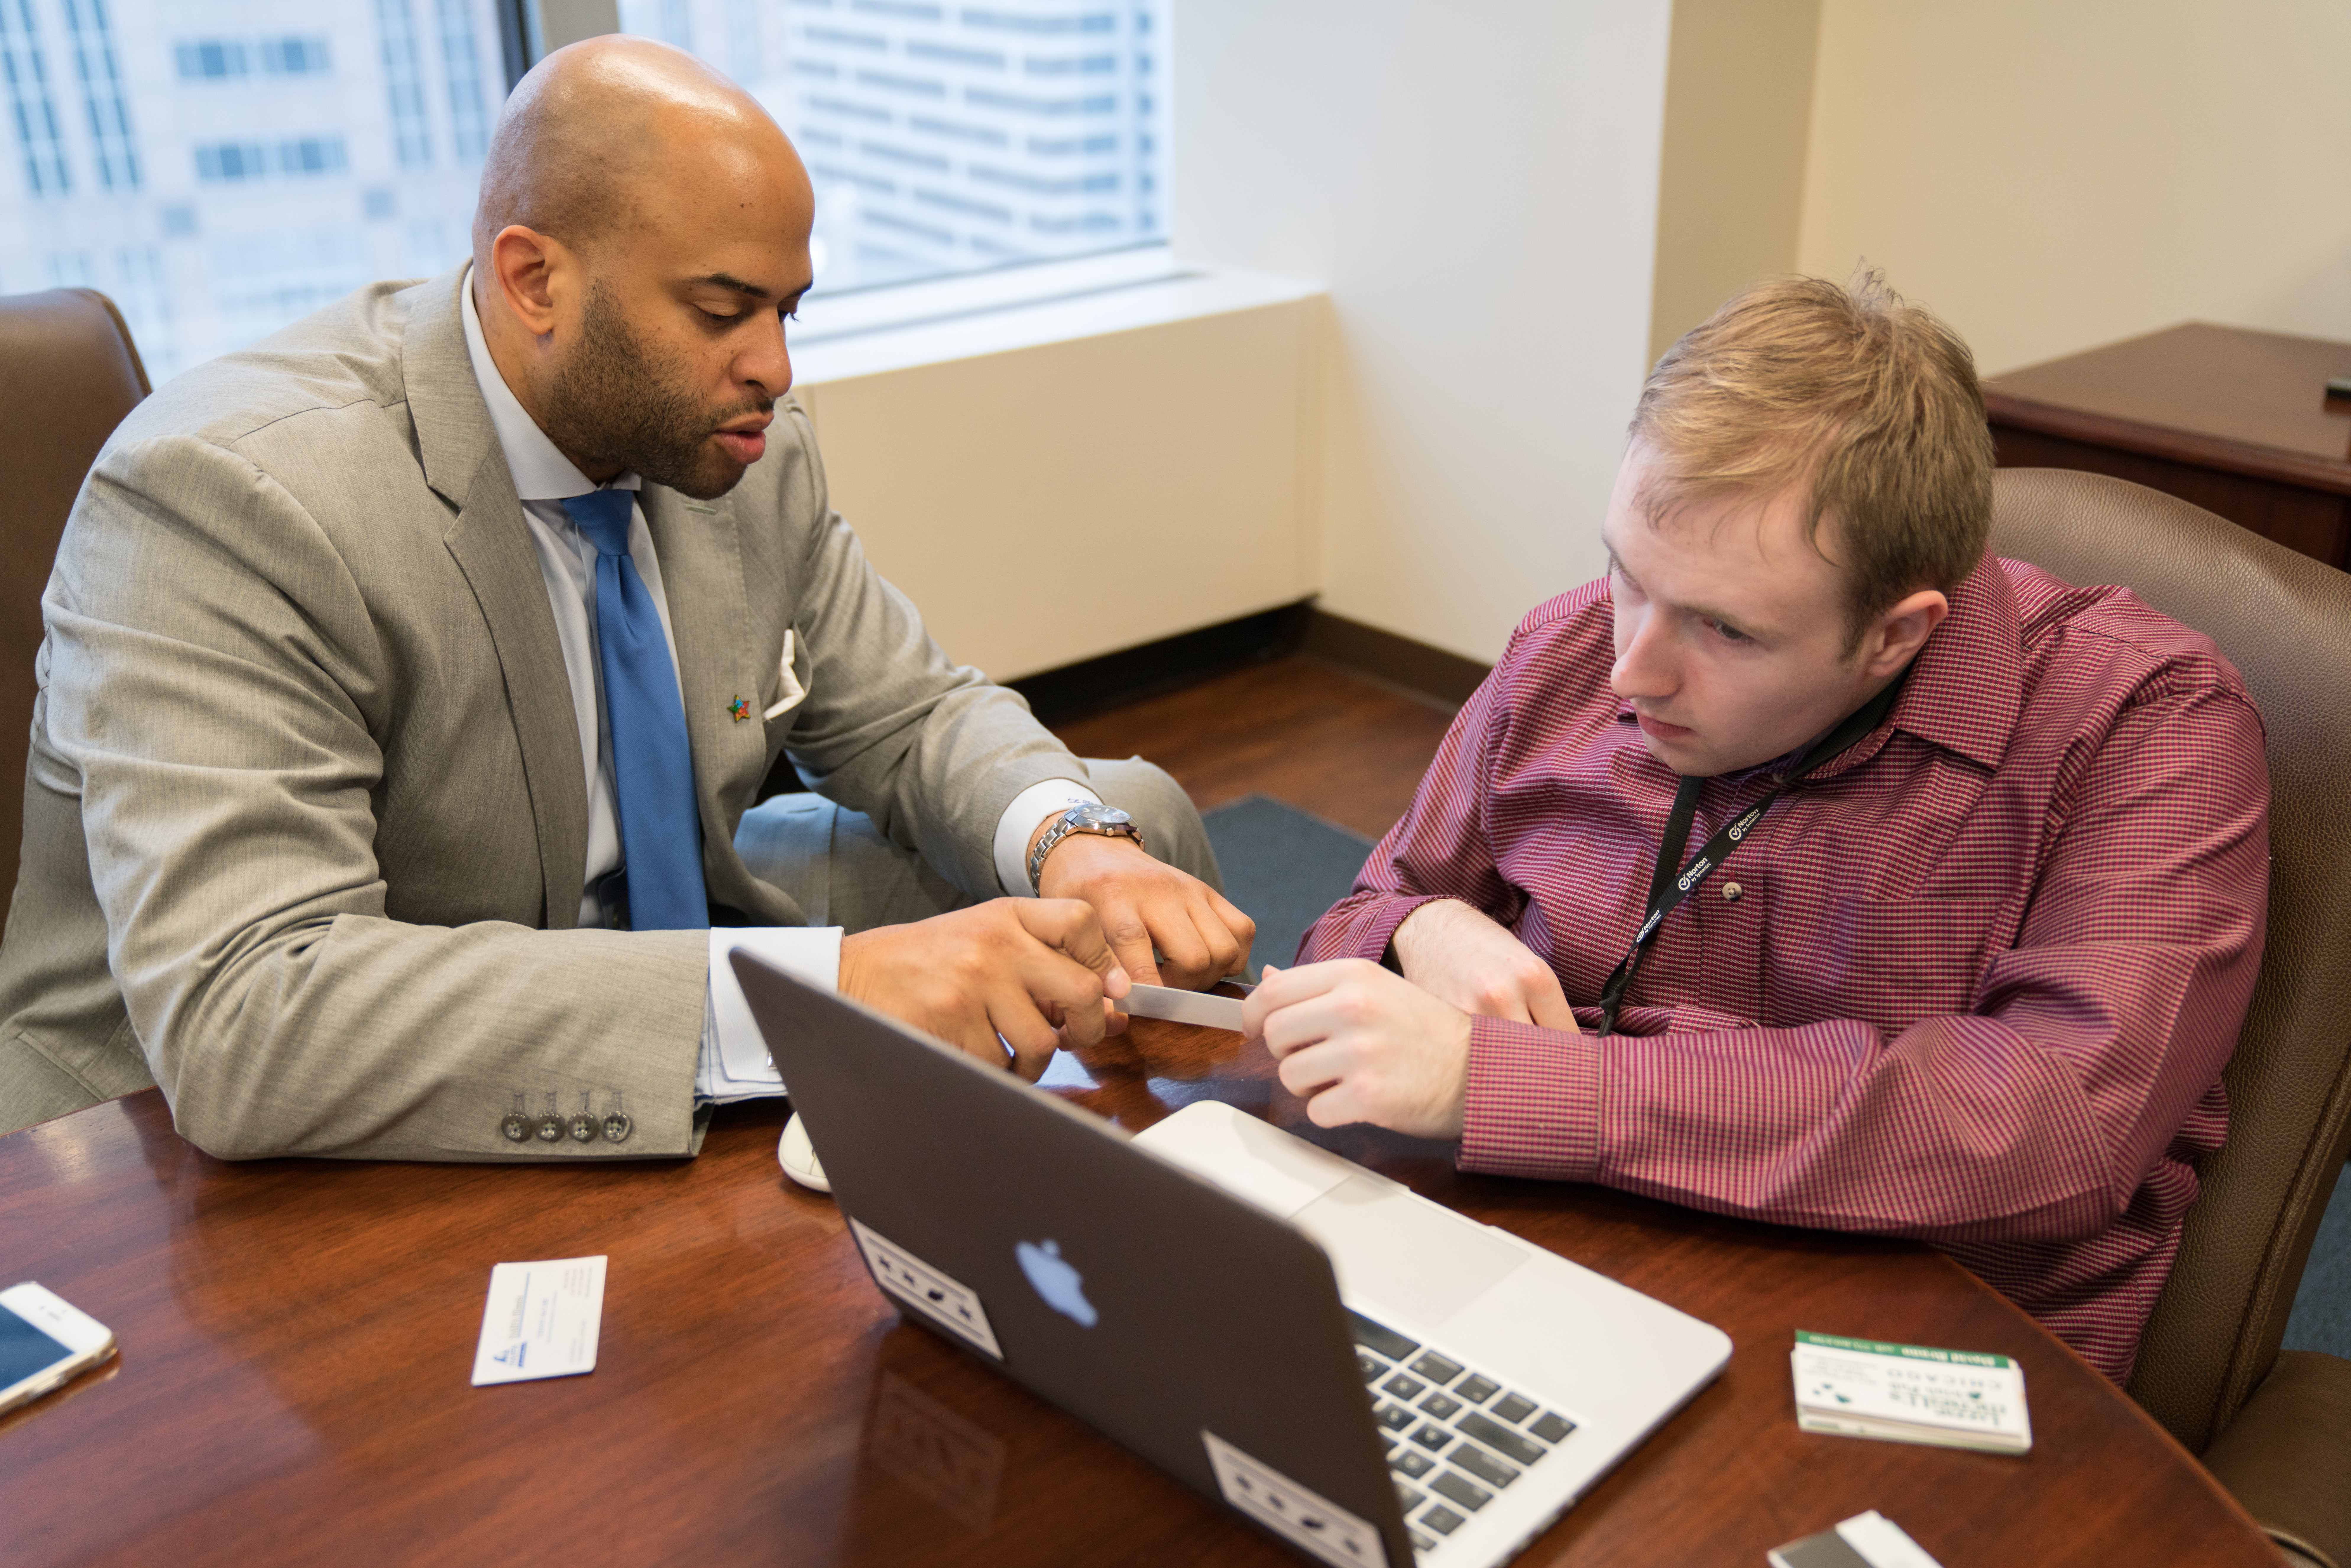 Can Disability Help Your Bottom Line >> Teachability Job Matching Platform For People With Differing Abilities